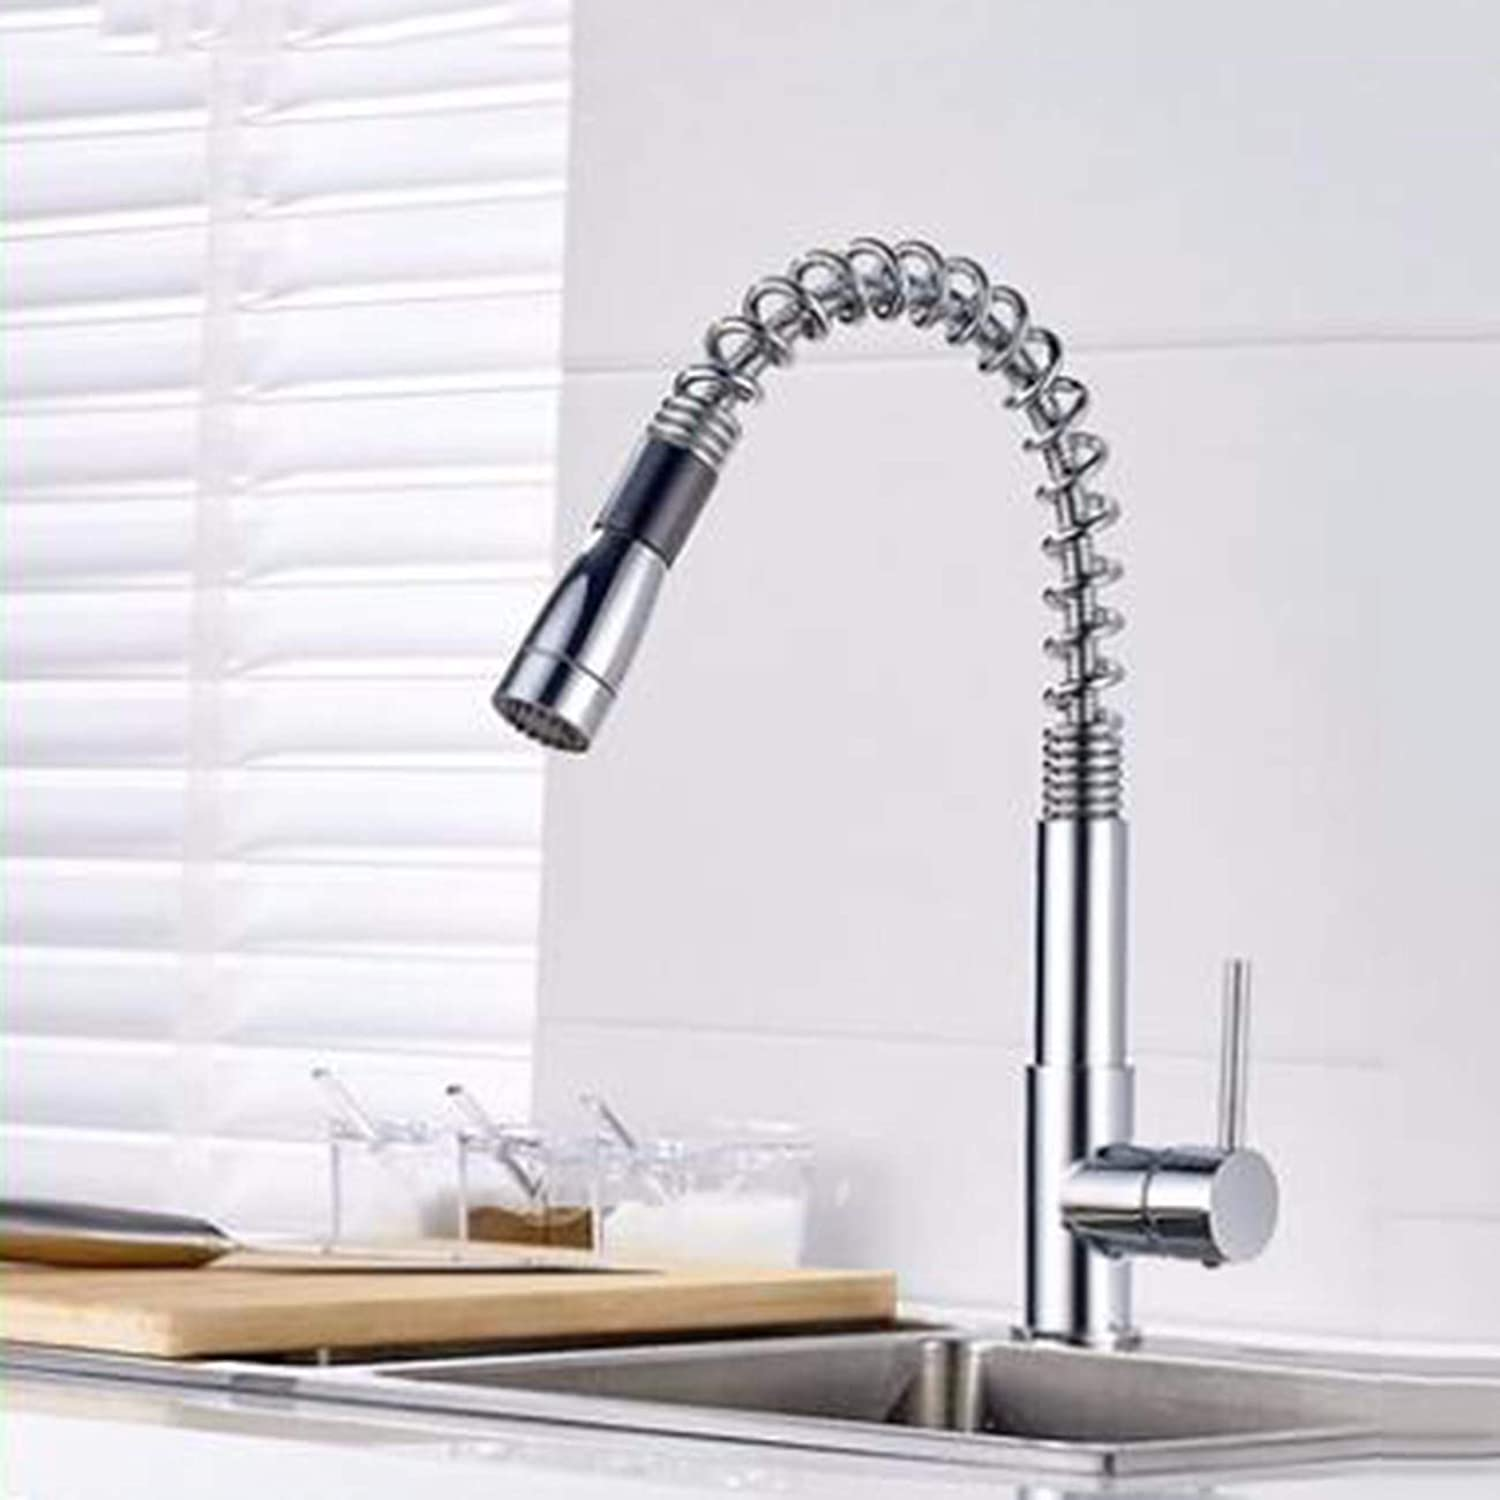 Kitchen faucet All Copper Chrome Plated Spring Pulls redary Kitchen Sinks Faucets Hot And Cold Mixed Vegetable Pots.